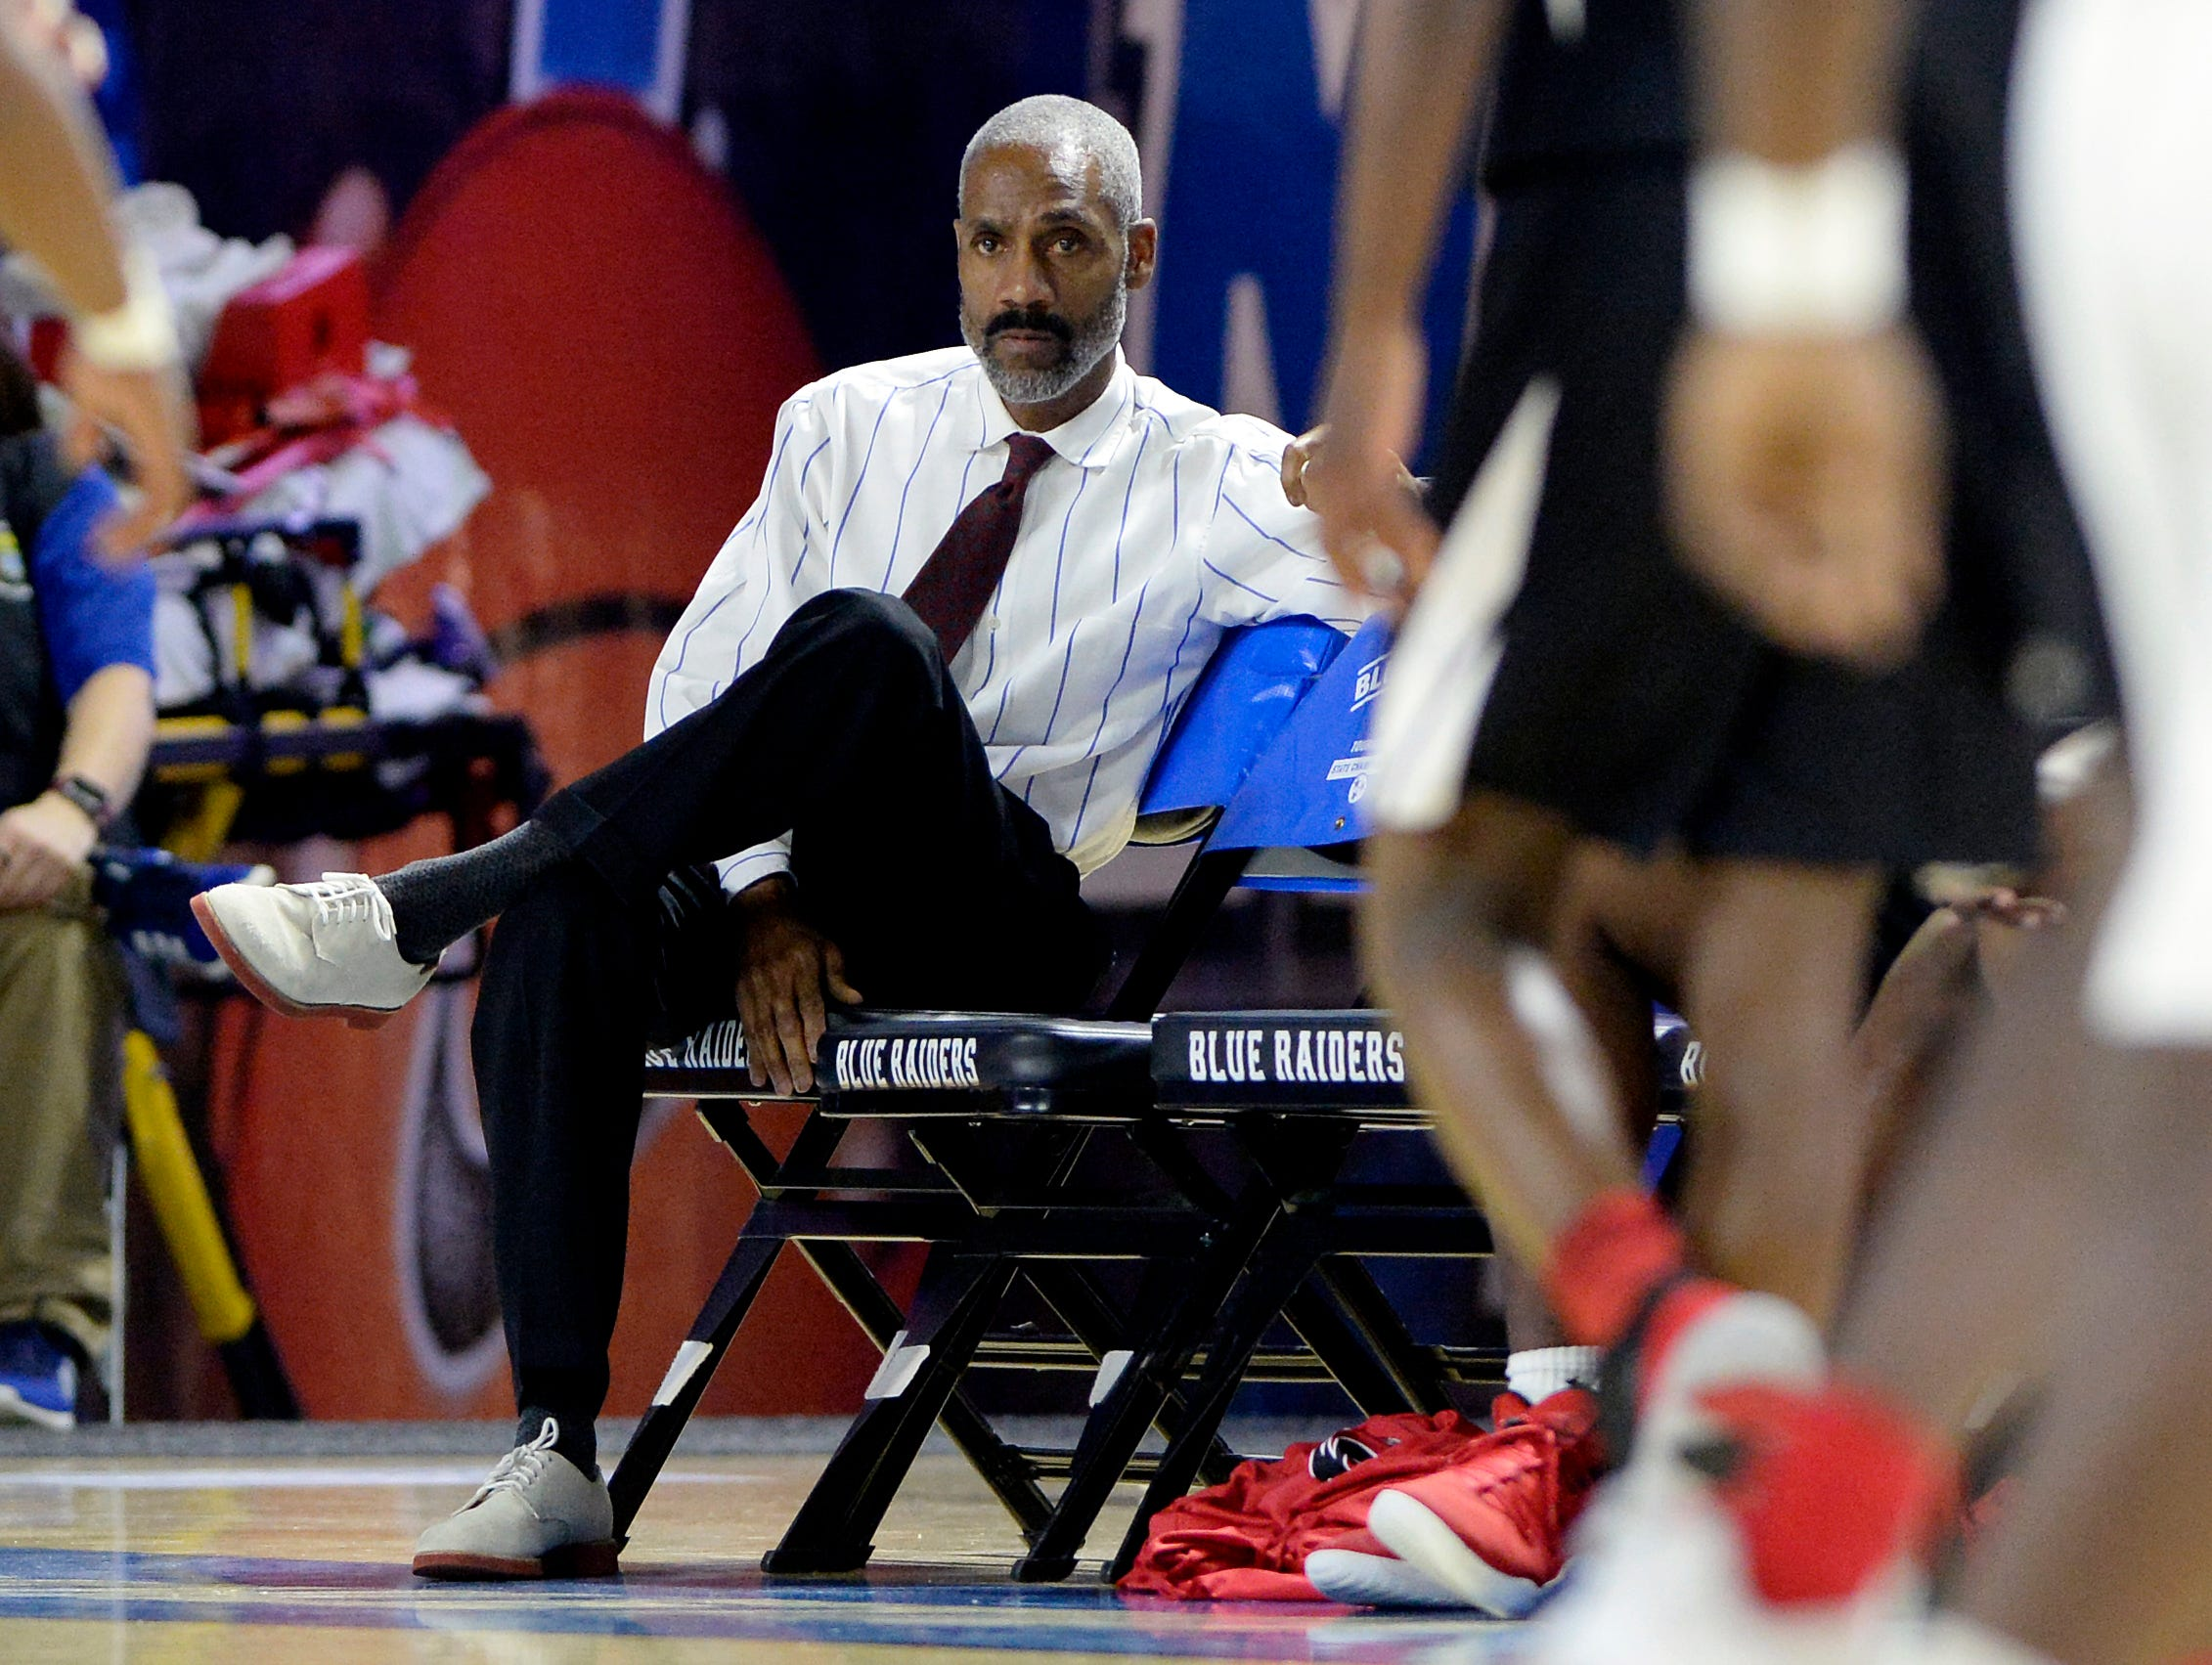 Pearl-Cohn assistant coach James Shelton watches the action from the bench during the first half of a Class AA boys state basketball quarterfinal game against Brainerd Wednesday, March 13, 2019, in Murfreesboro, Tenn.